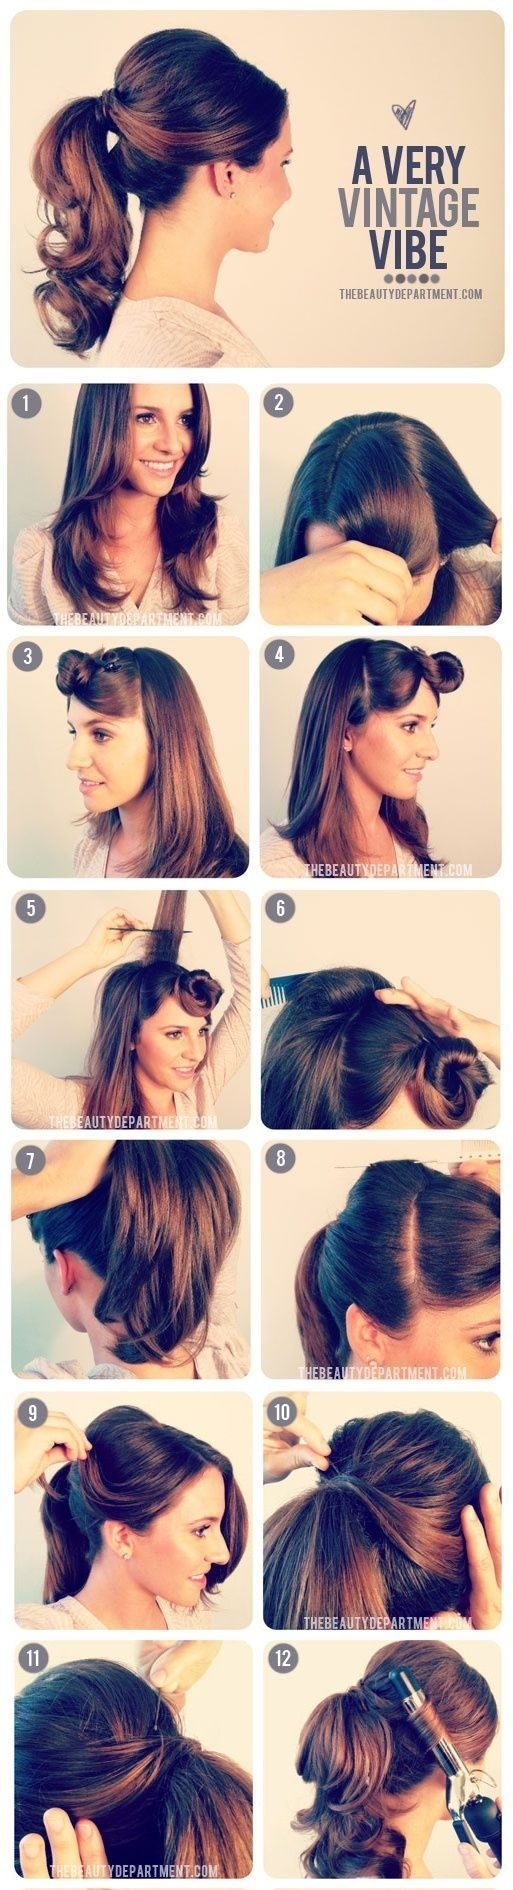 Burlesque Updo Hairstyles For Long Hair Make Up Vintage Frisuren